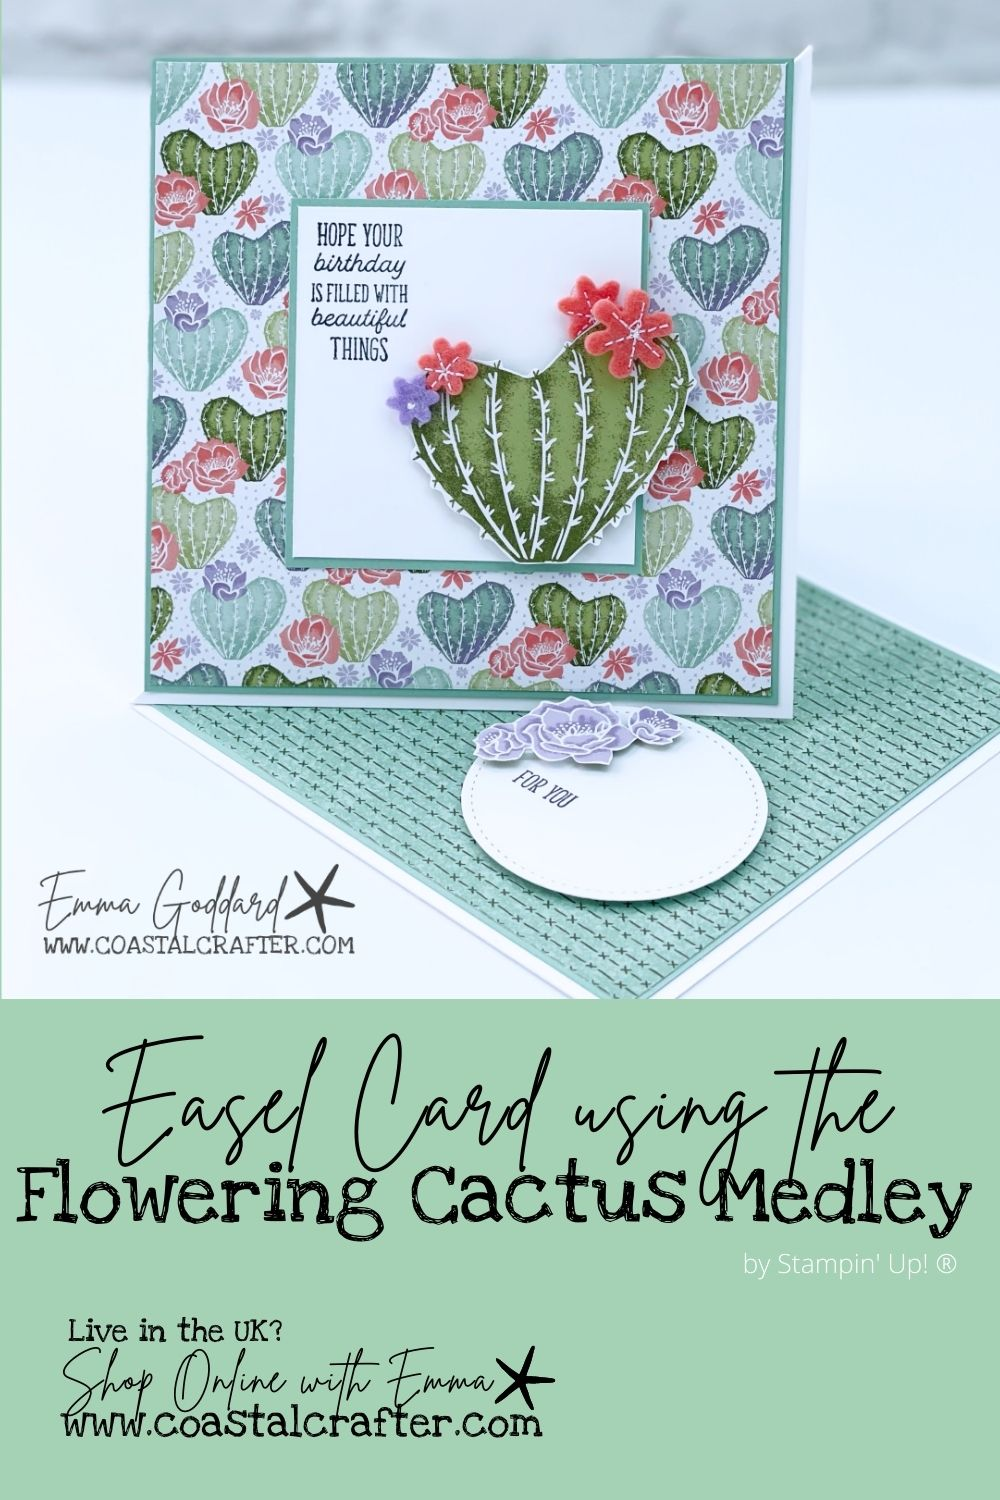 Flowering Cactus Product Medley